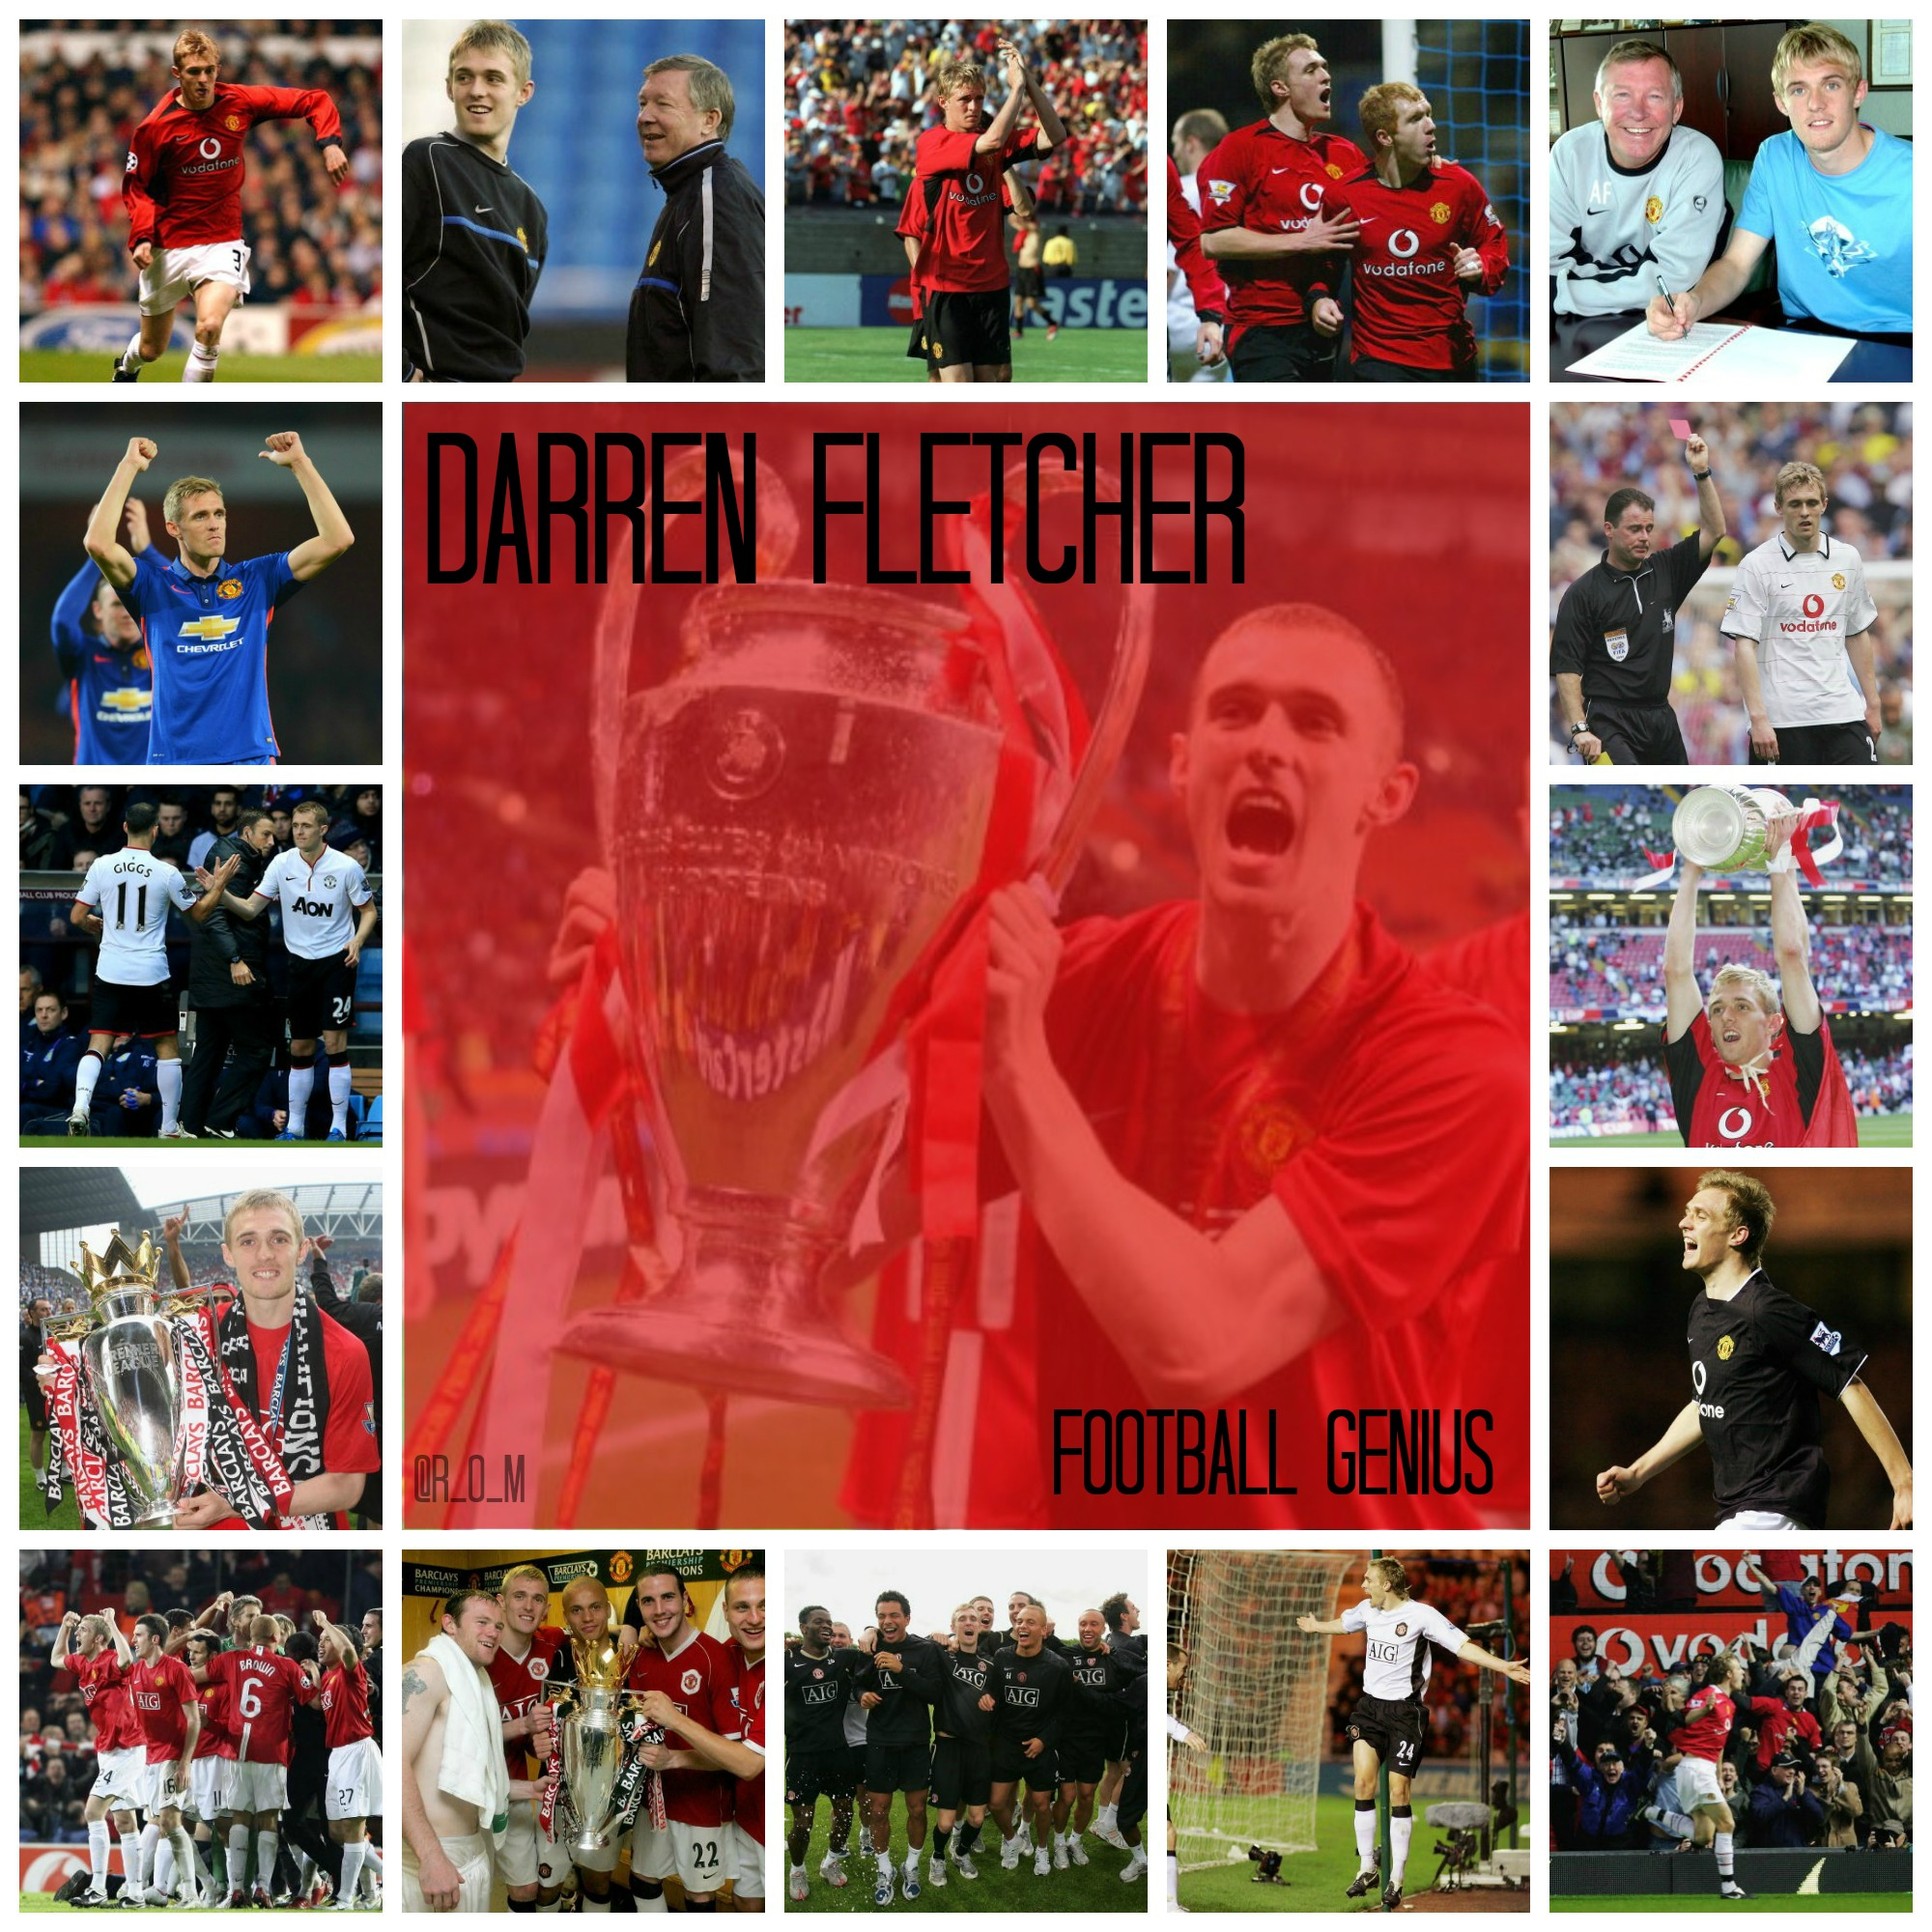 Darren Fletcher collage